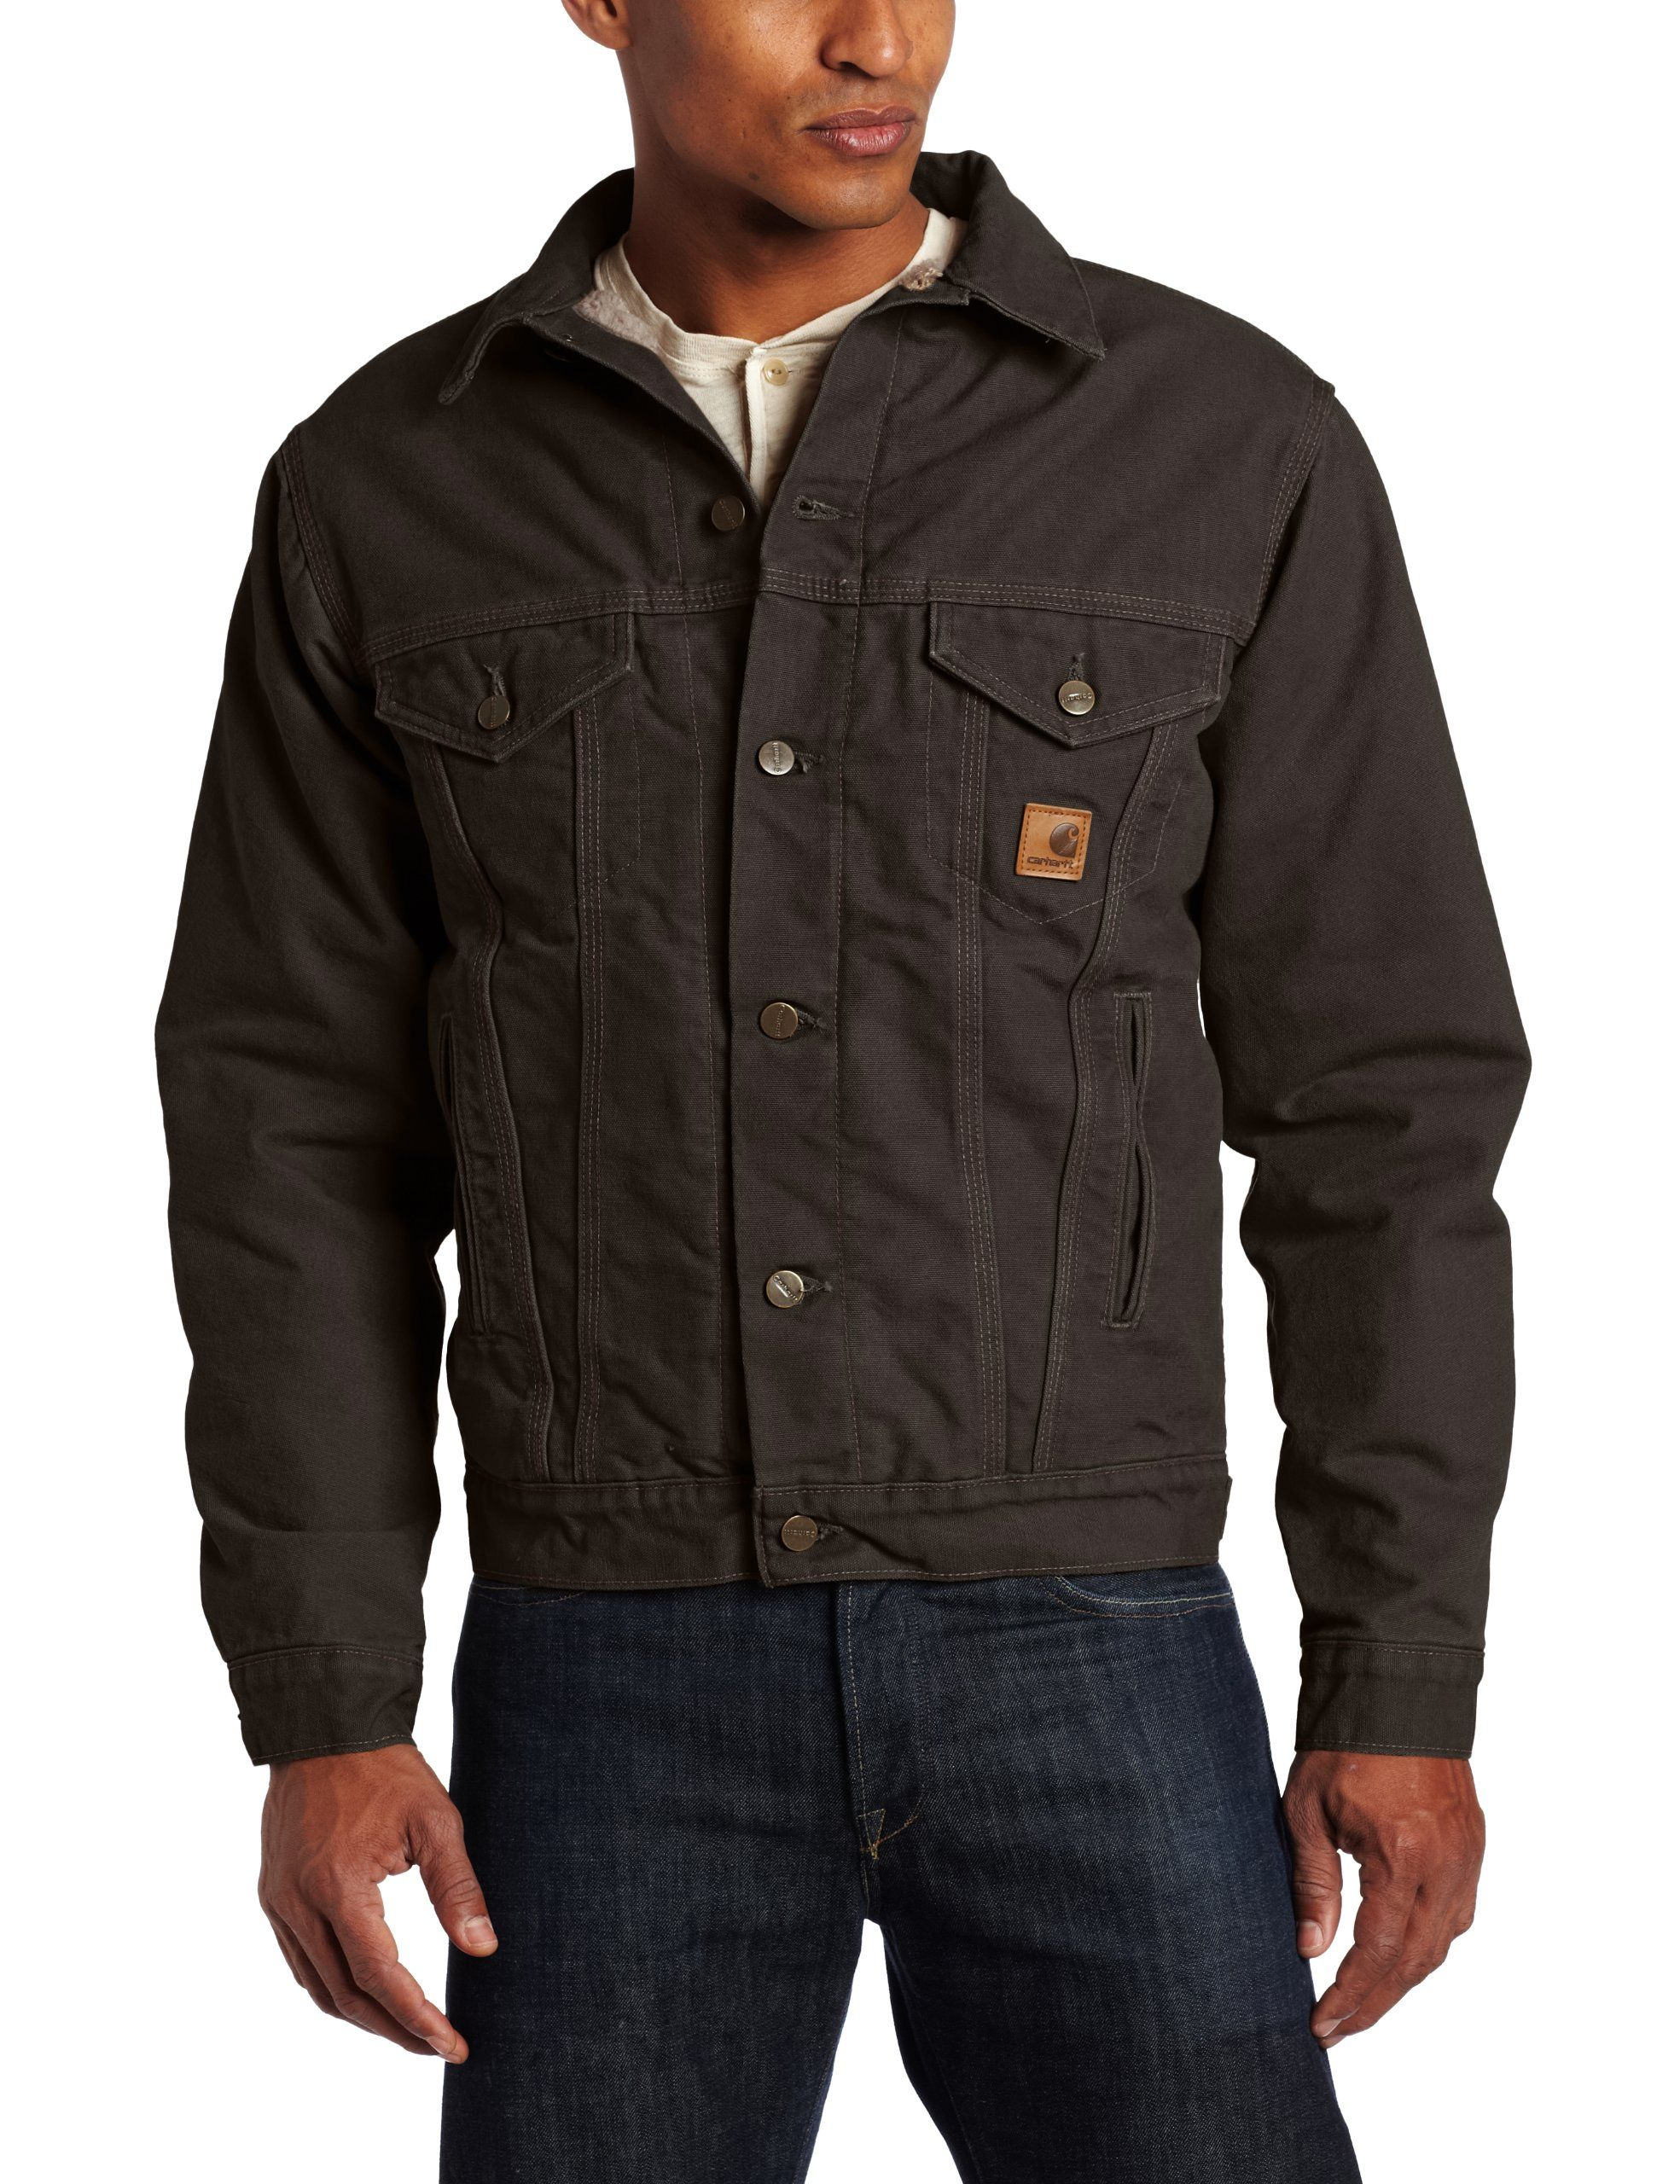 7b6acc4663 Carhartt Men's Sandstone Duck Jean Jacket with Sherpa Lining at Amazon Men's  Clothing store: Denim Jackets $84